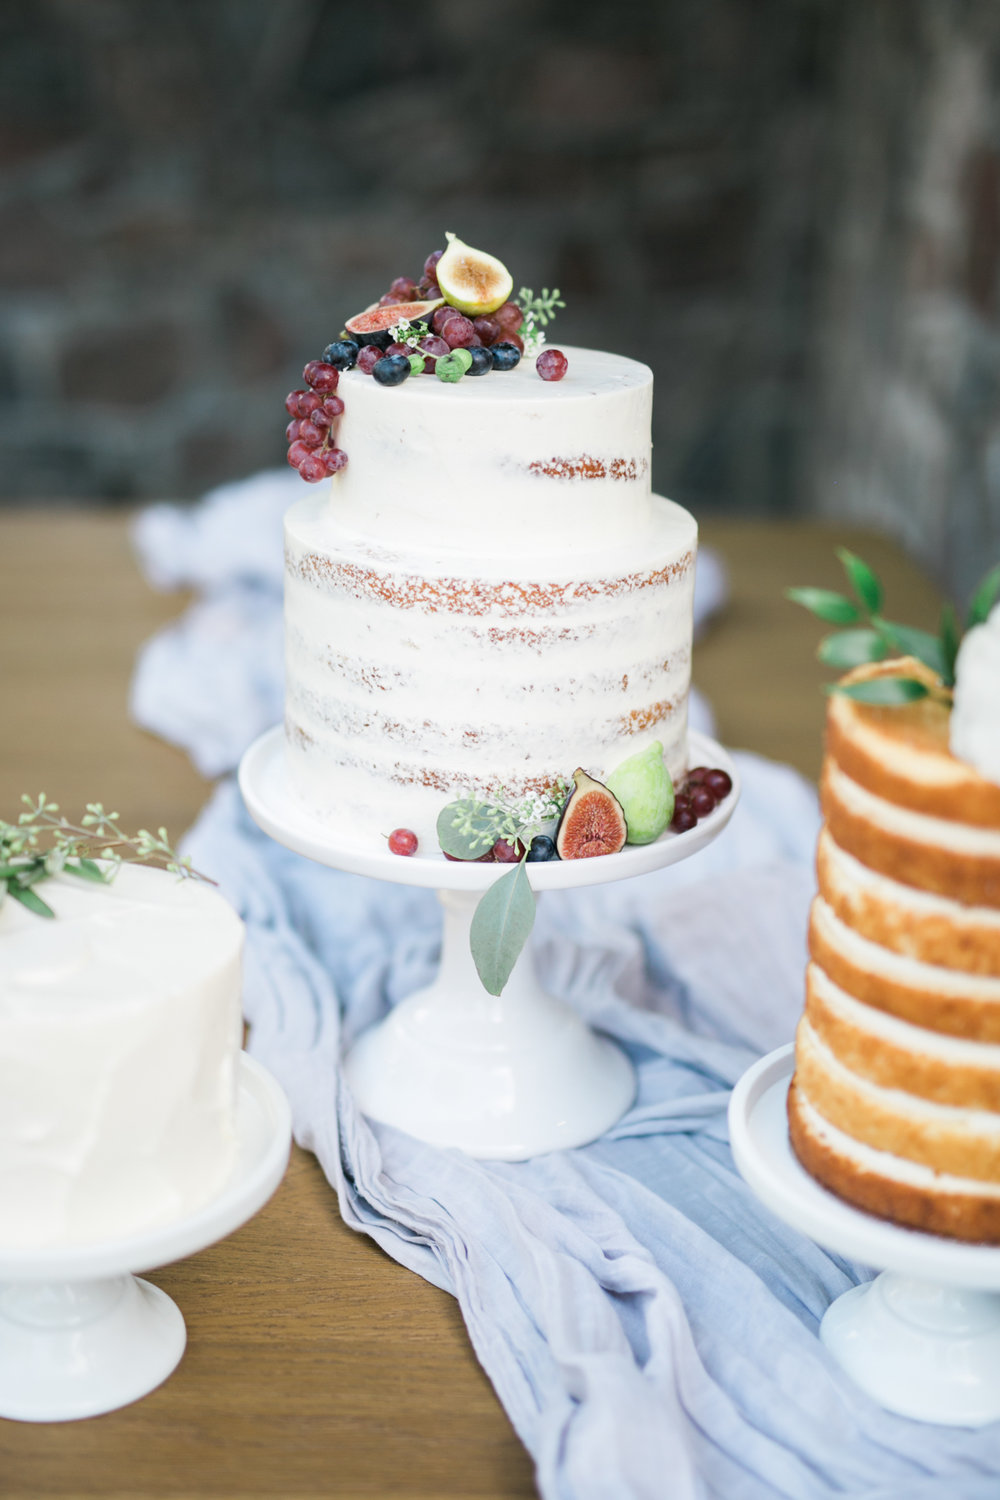 Half naked cakes with florals and fruits - Fairytale Wedding (Wedluxe)